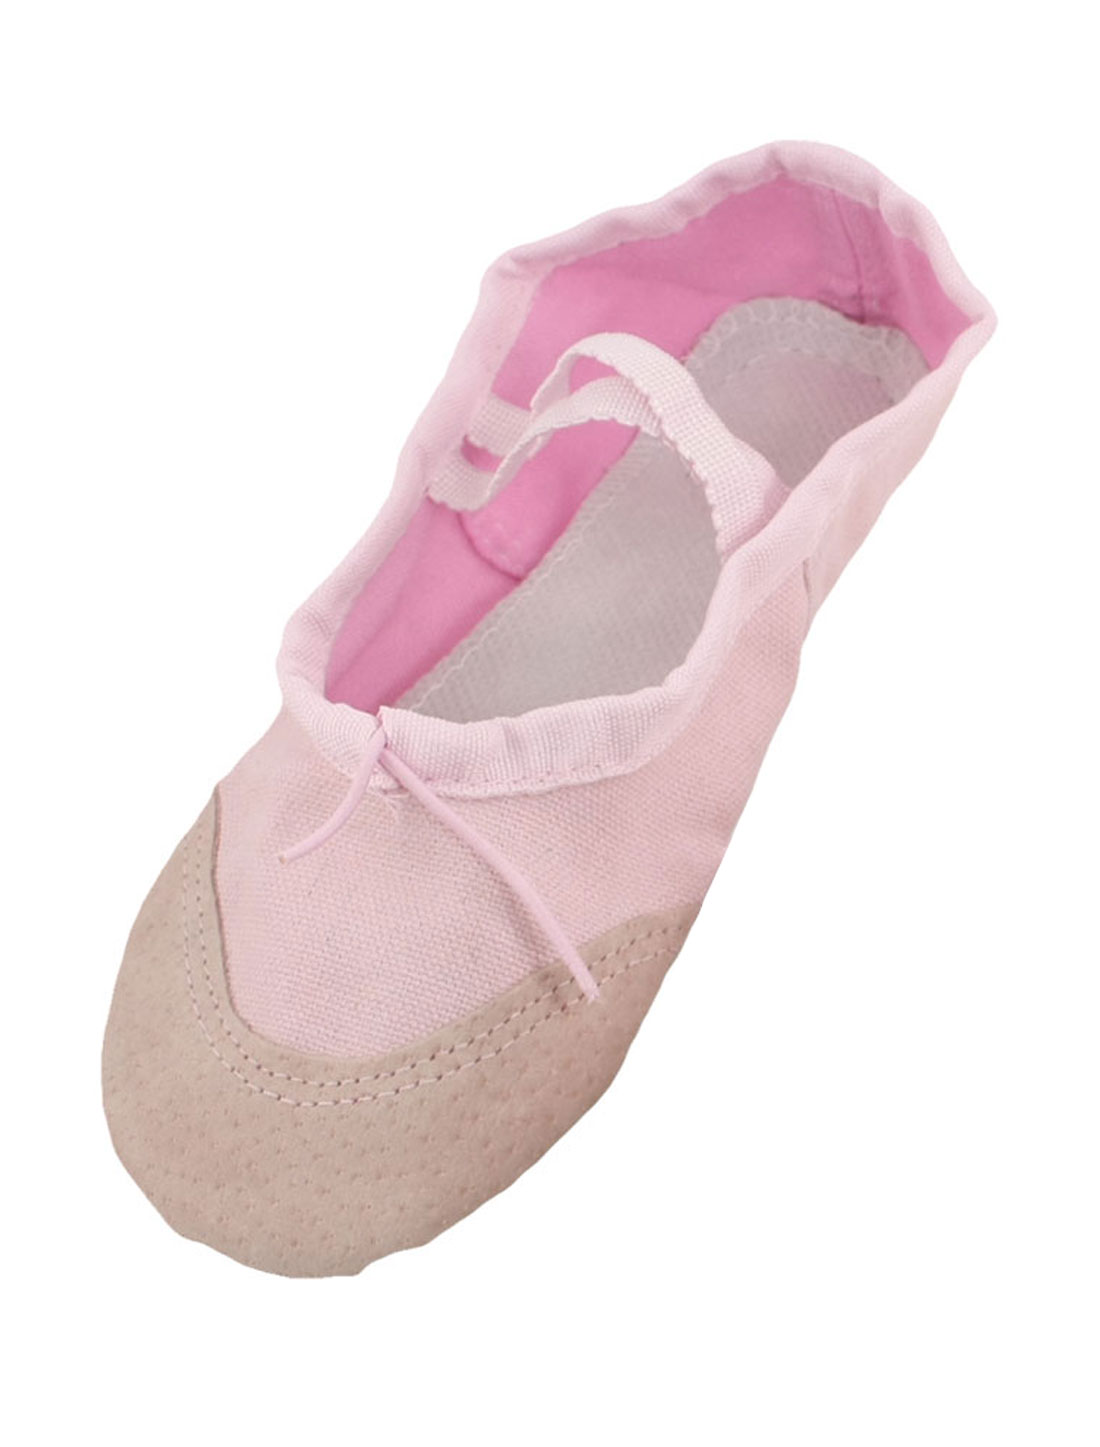 Girls Pink Elastic Band Canvas Ballet Dancing Flats Shoes EU 33